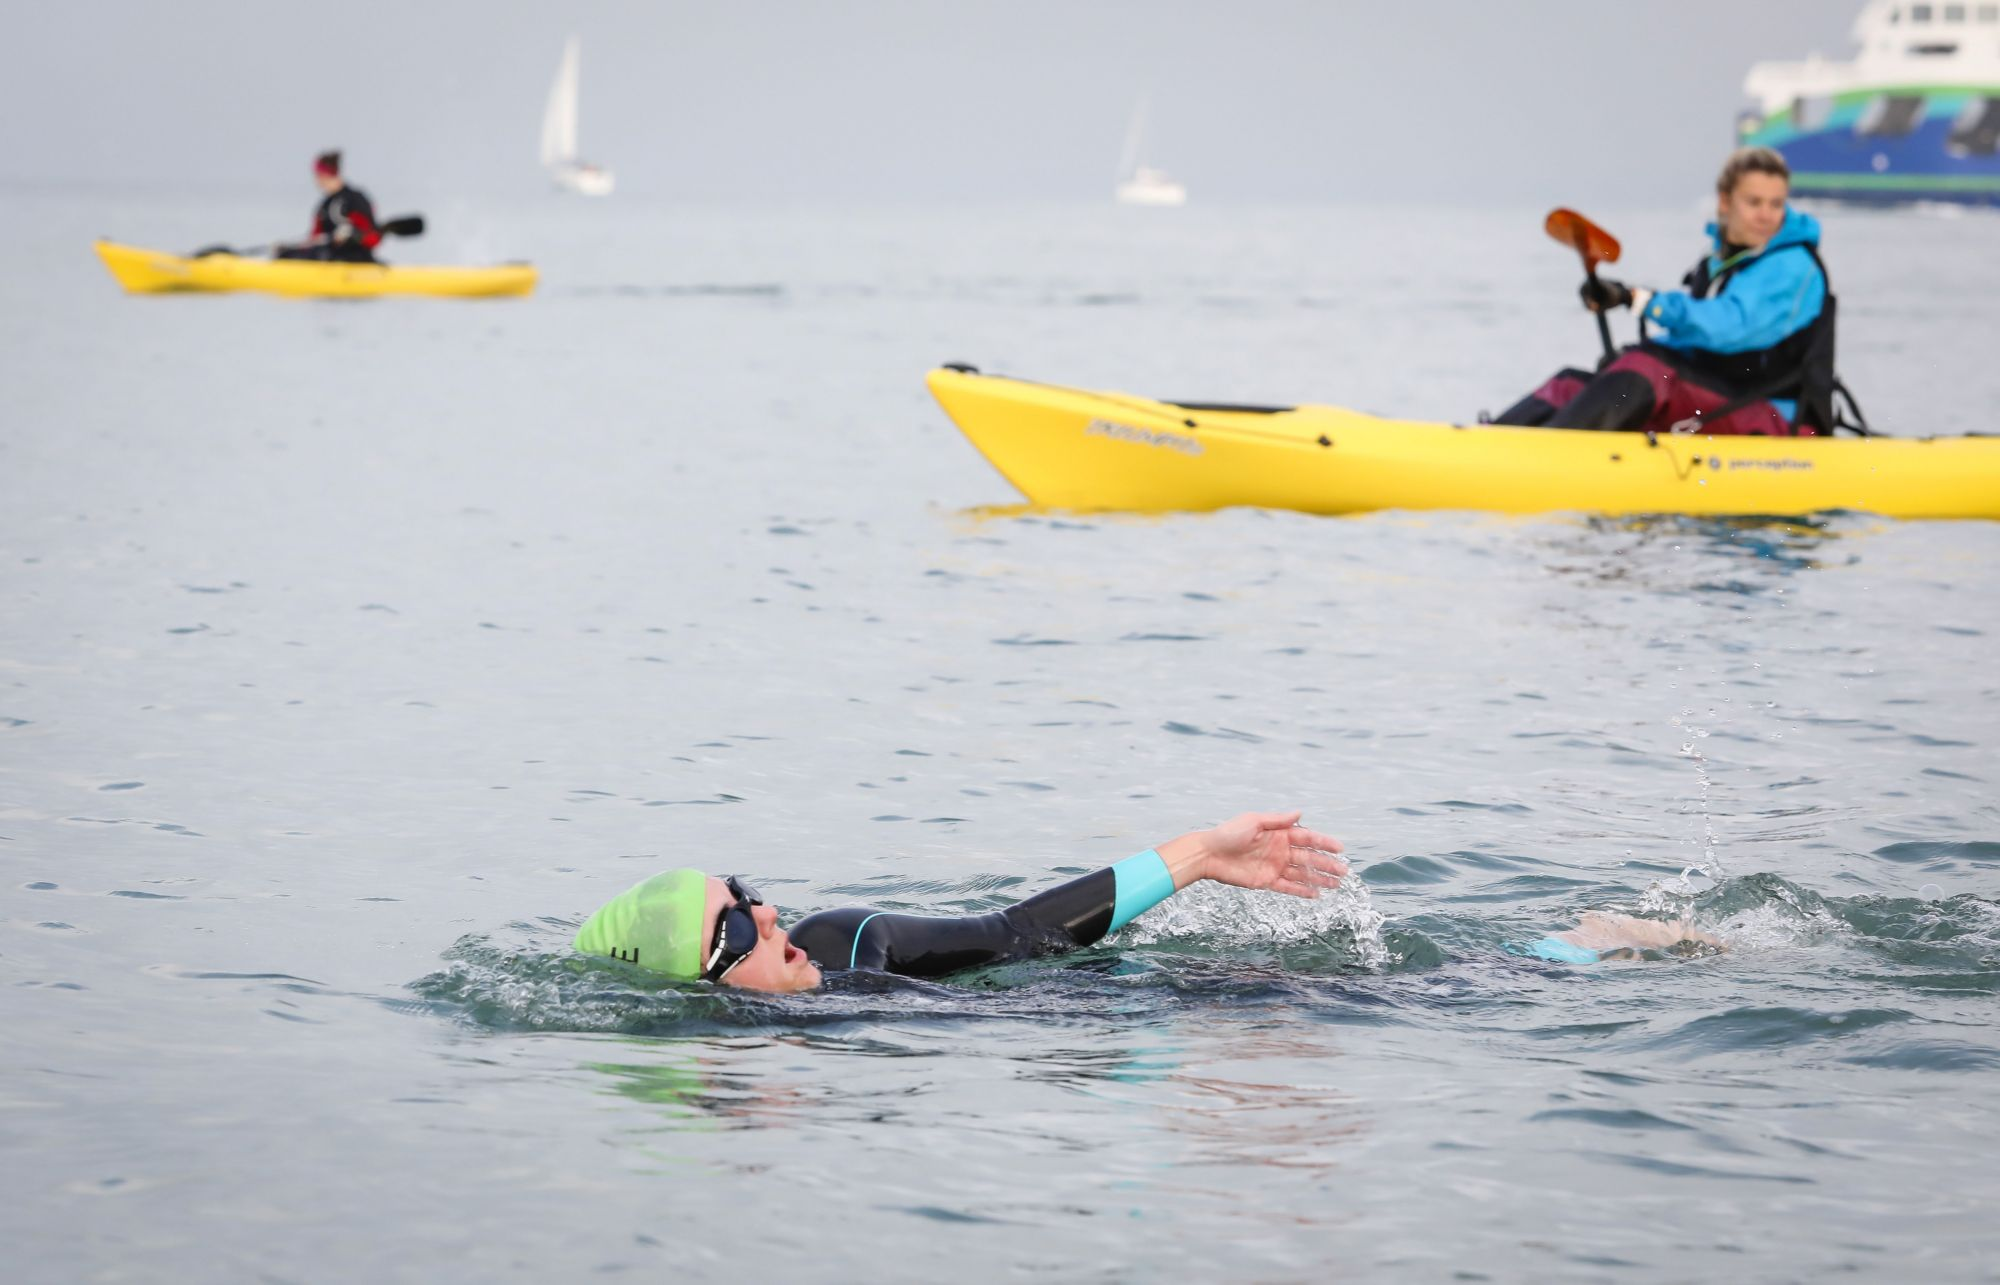 SWIM-IT TO RYDE: Jess Howe, one of the Trant Engineering participants, in action in the three-mile crossing from Gosport to Ryde, Isle of Wight